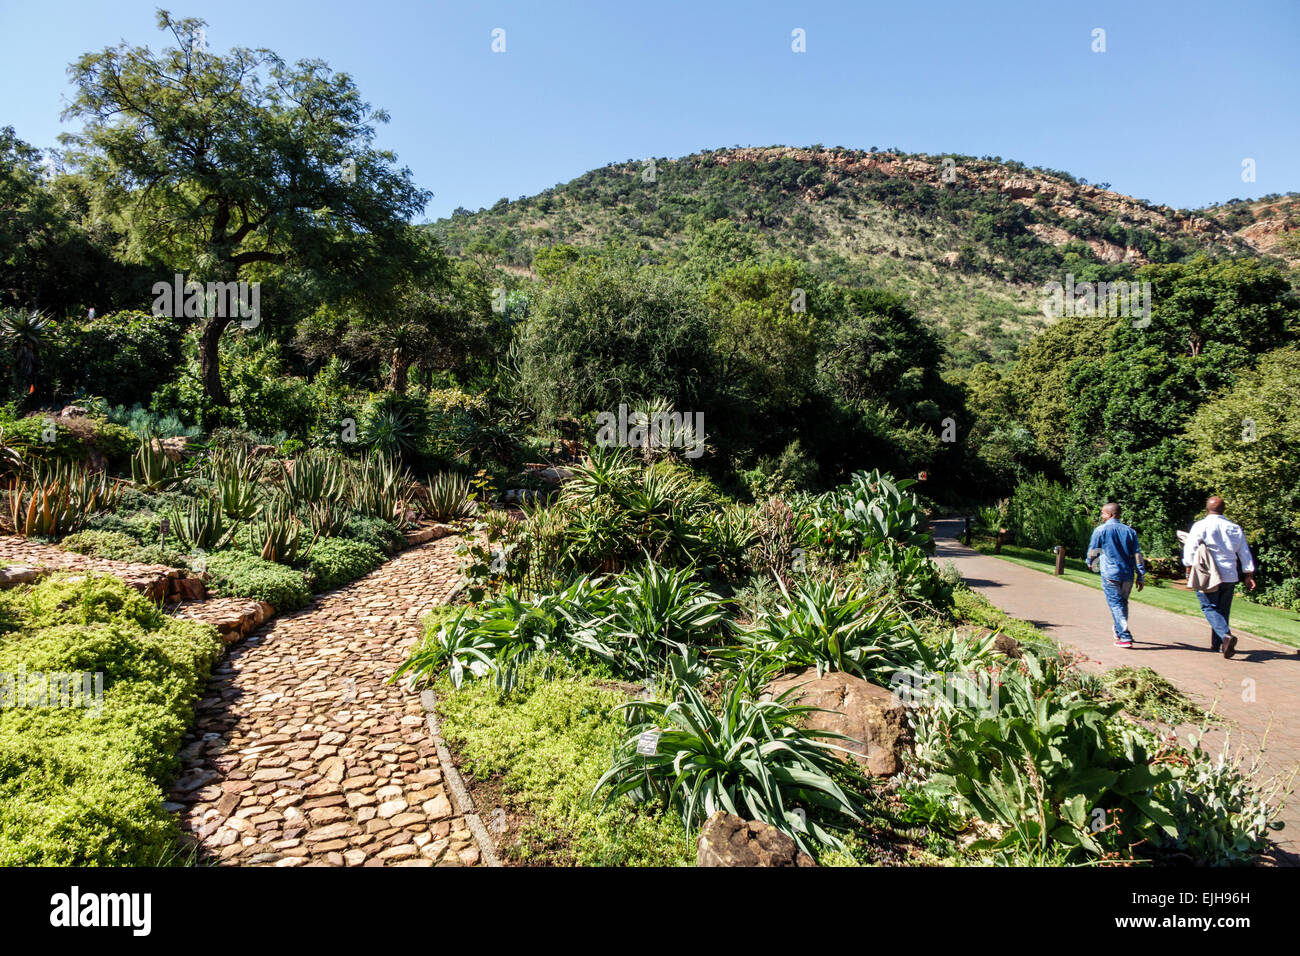 Walter sisulu botanical gardens hiking trails garden ftempo for Gardening tools uckfield